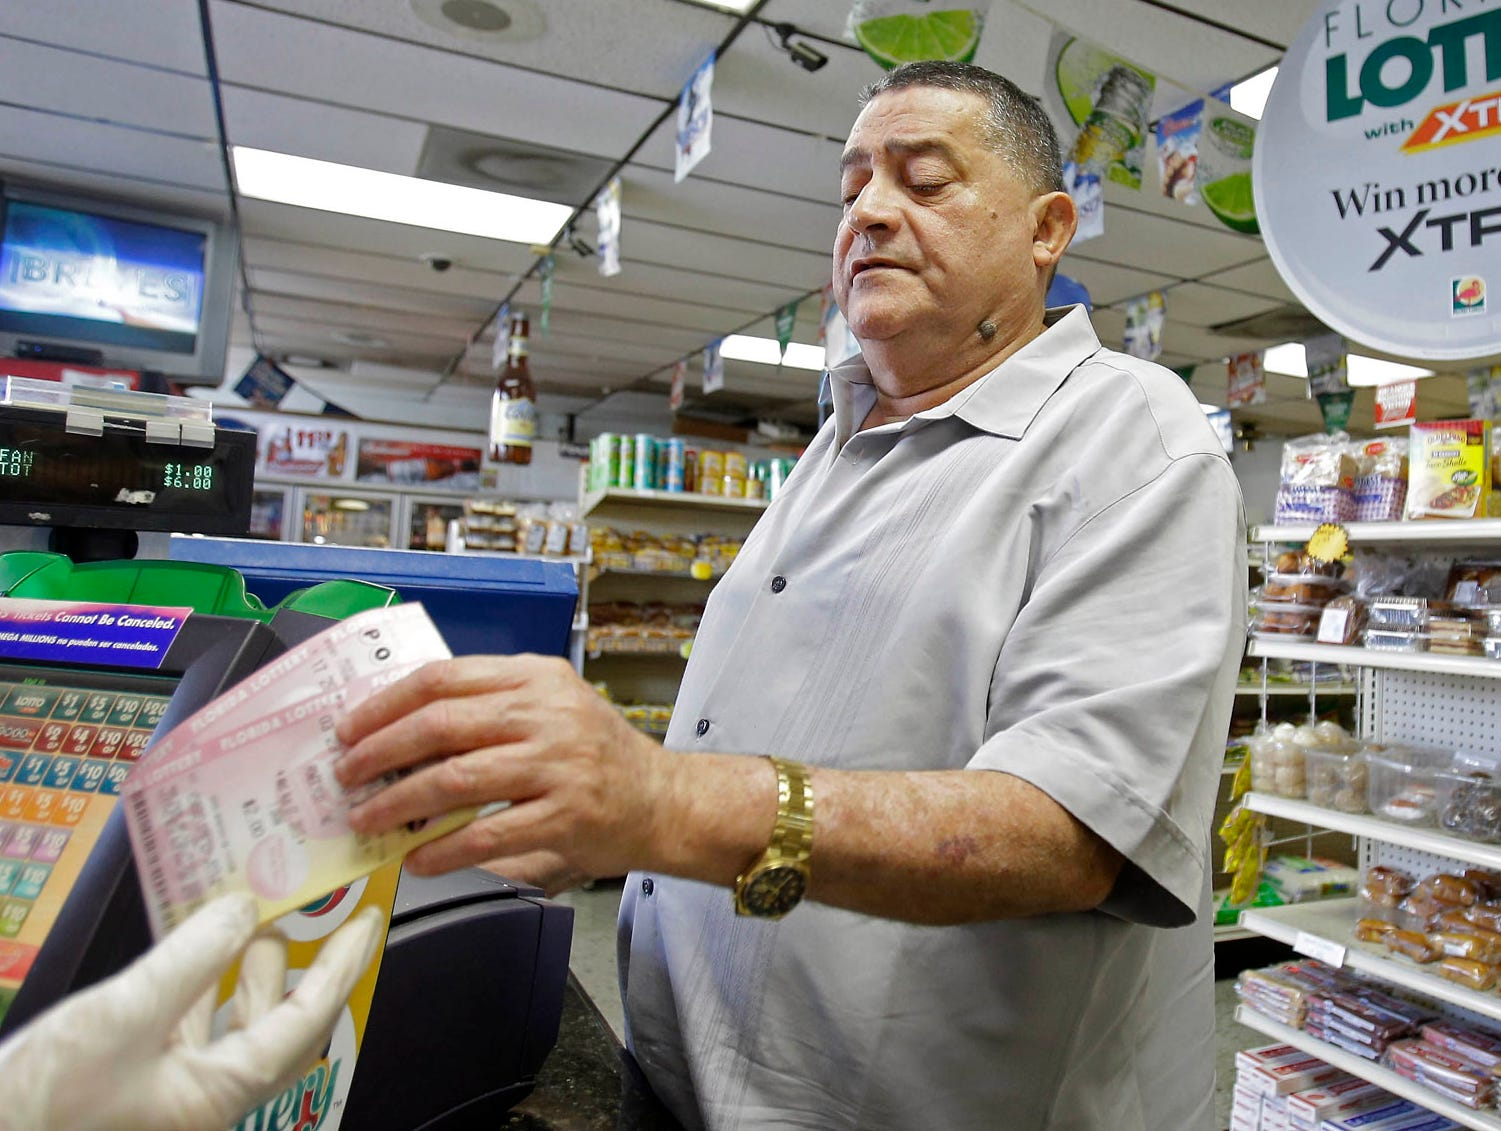 Remberto Gonzalez purchases Powerball tickets at a store in Hialeah, Fla.